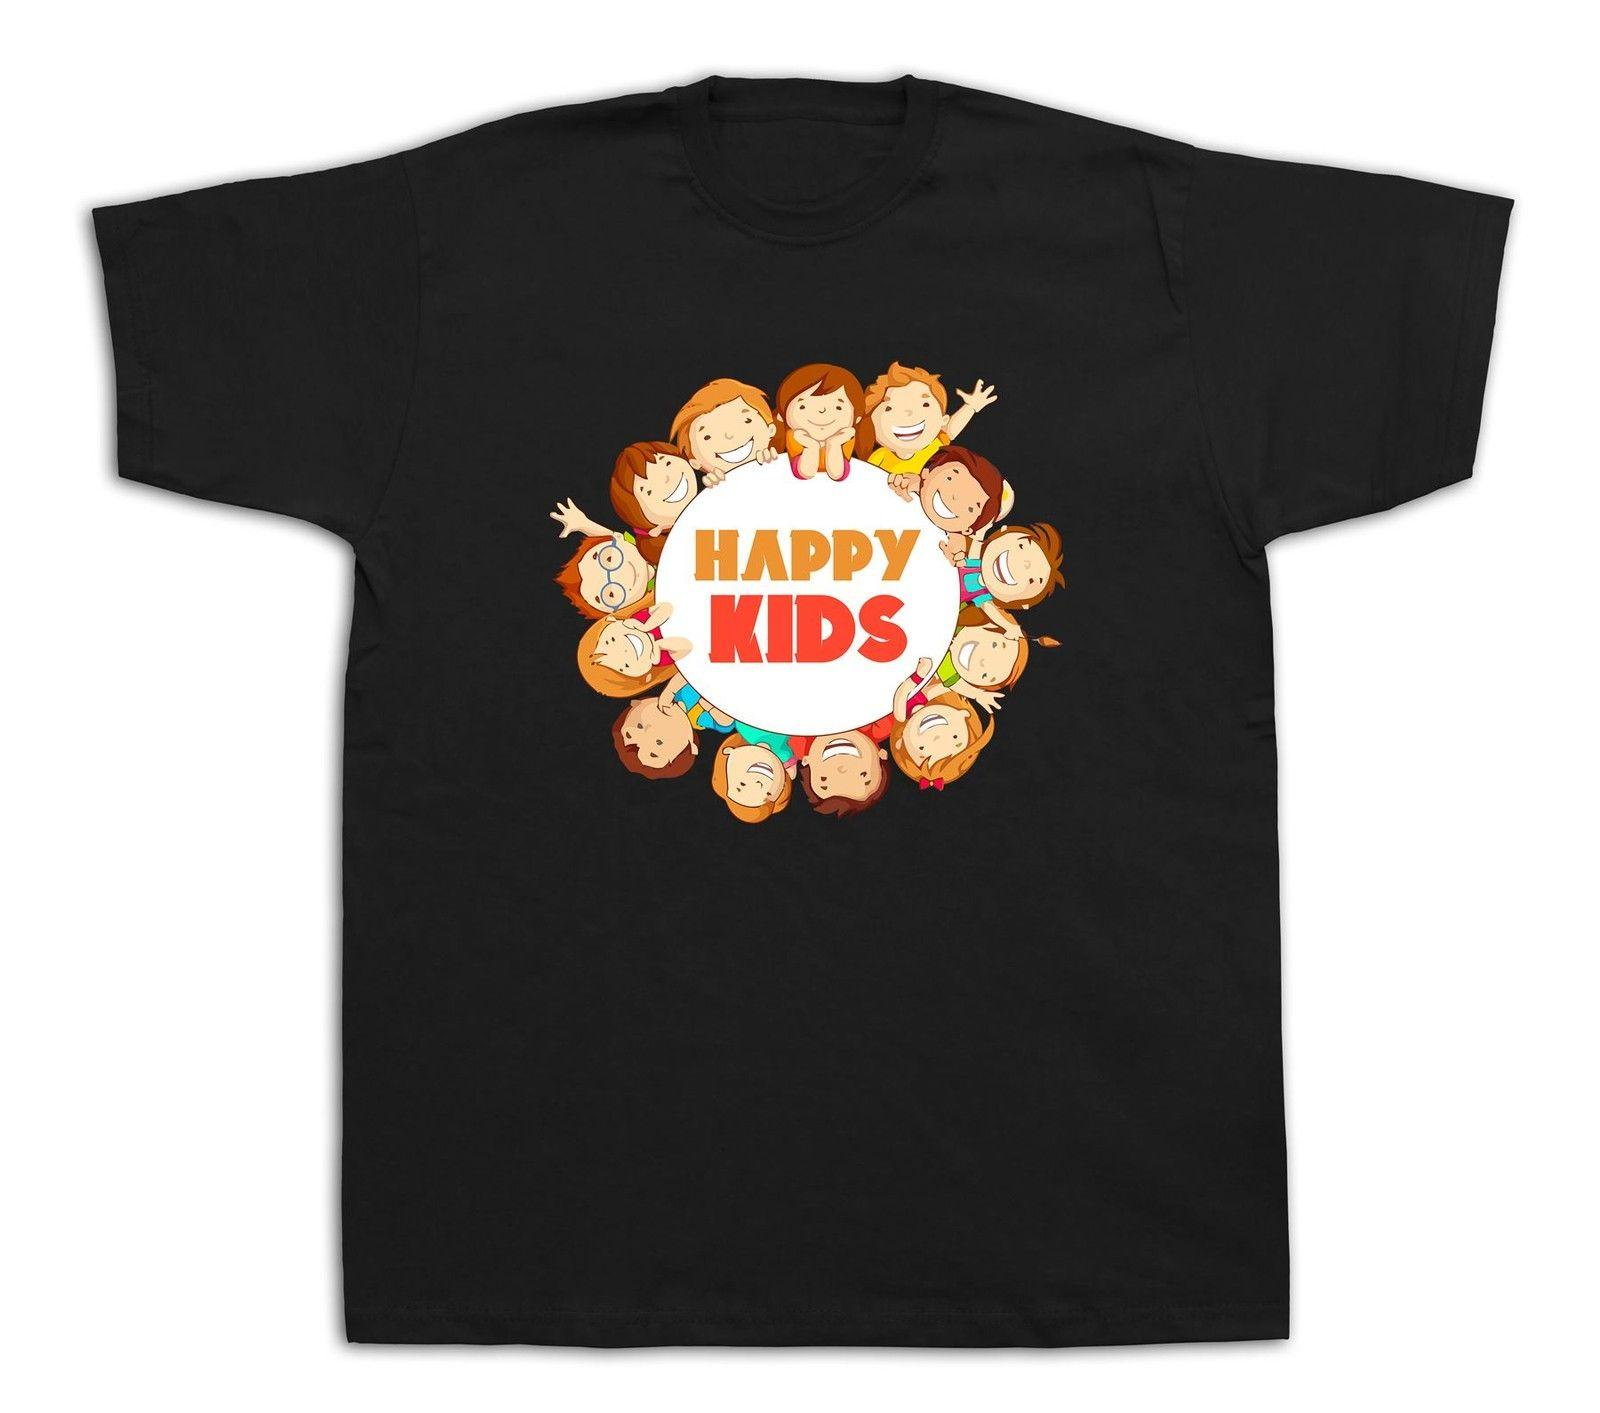 Happy Family kids world future funny T shirt fashion party children face  smily 1d4e7f389a